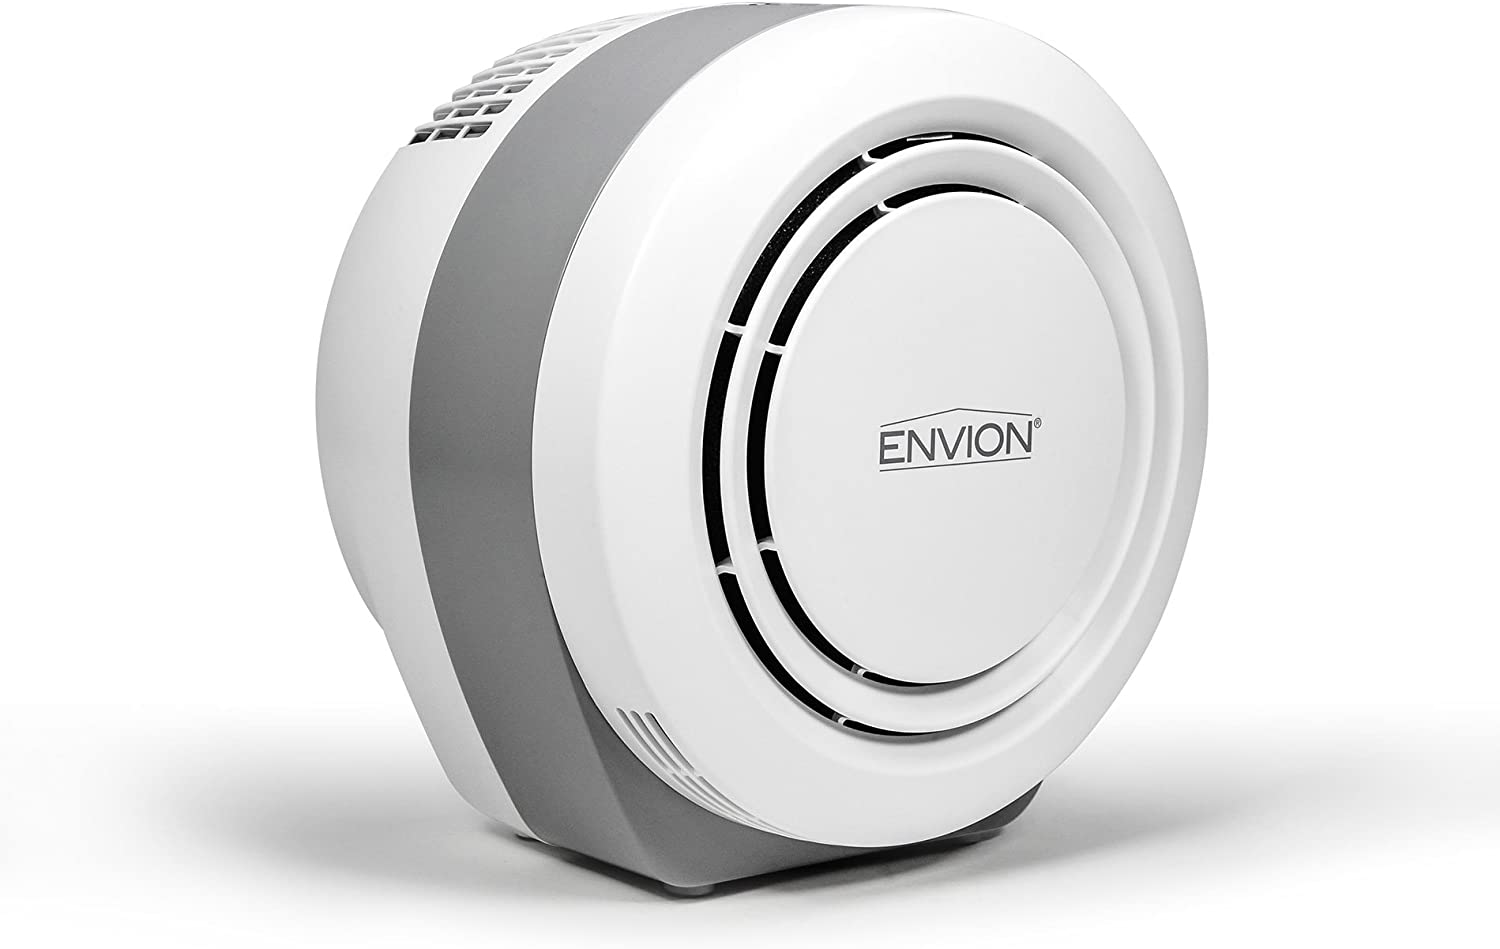 Envion Therapure EA150 Compact True HEPA 3-in-1 Air Purifier, 170 Sq Ft Capacity   Removes Odors, Smoke, Dust, Mold, Pet Dander Eliminator for Allergies and Smokers